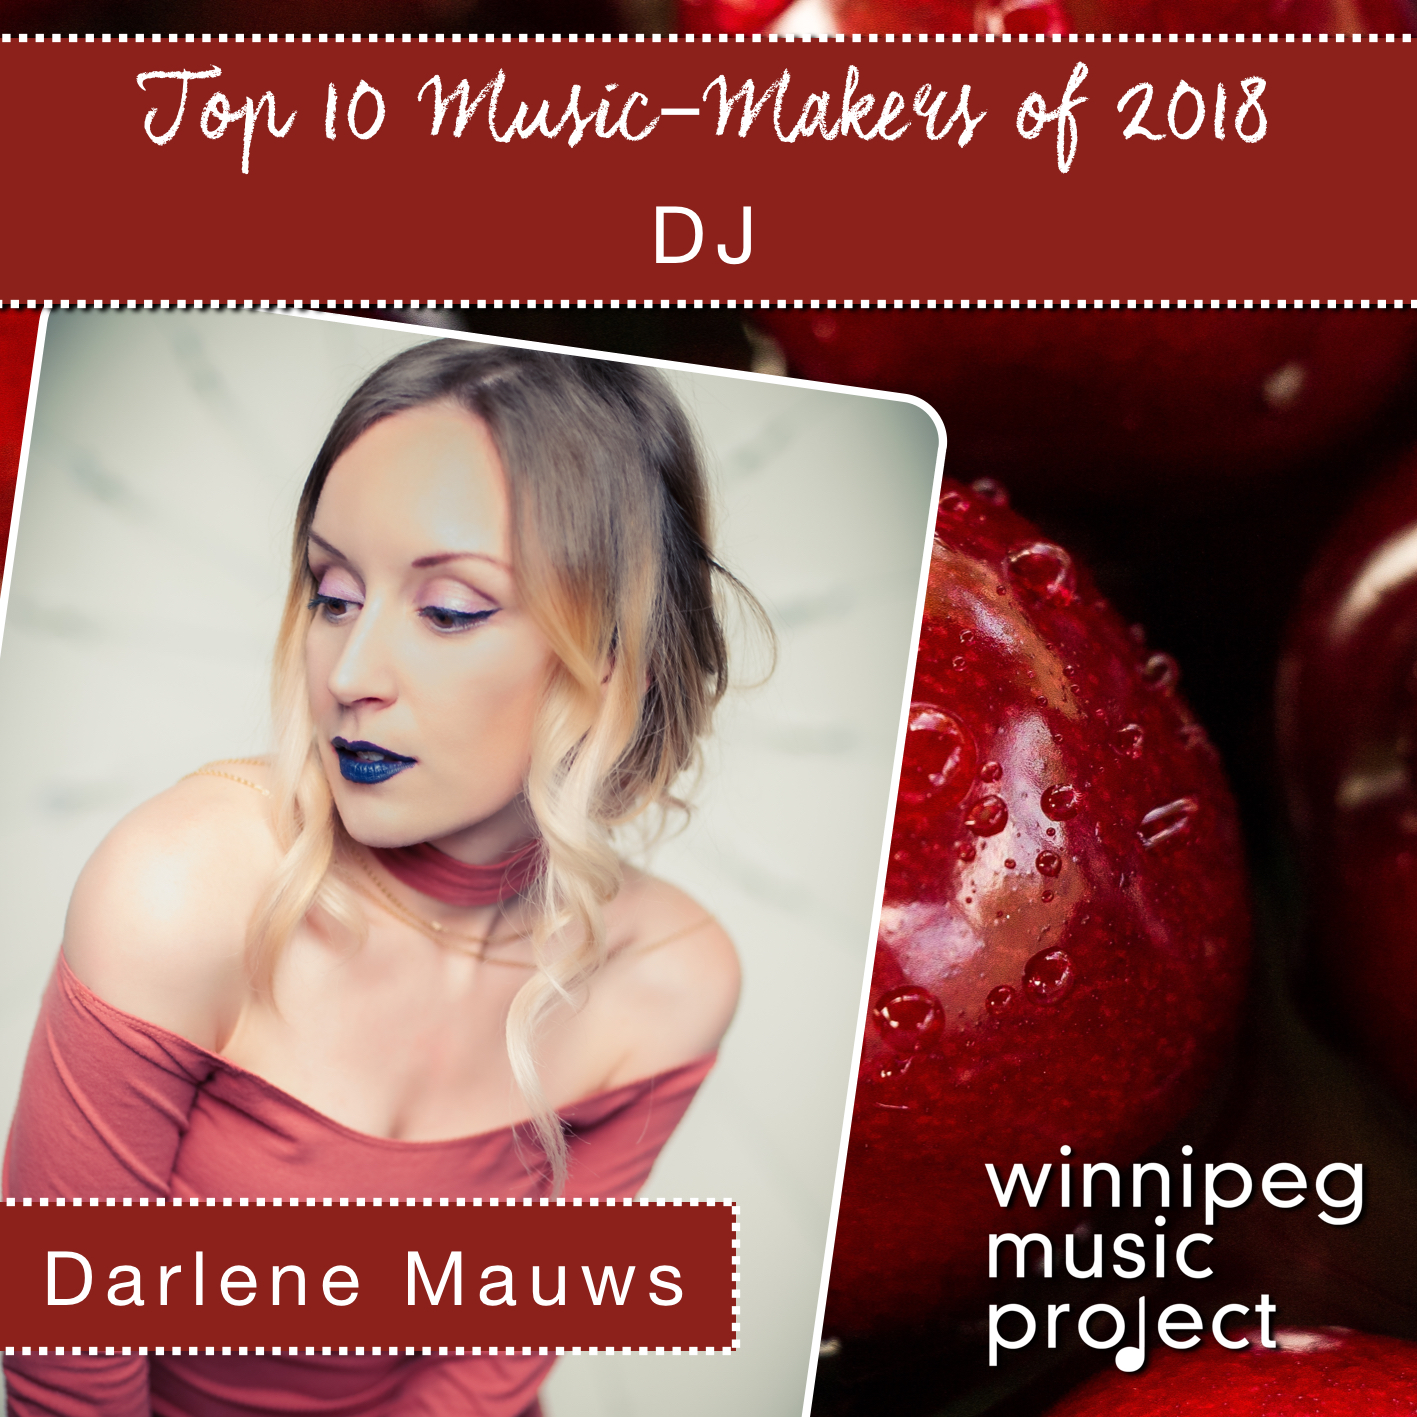 Darlene Mauws | Top 10 Music Maker of 2018 | Winnipeg Music Project